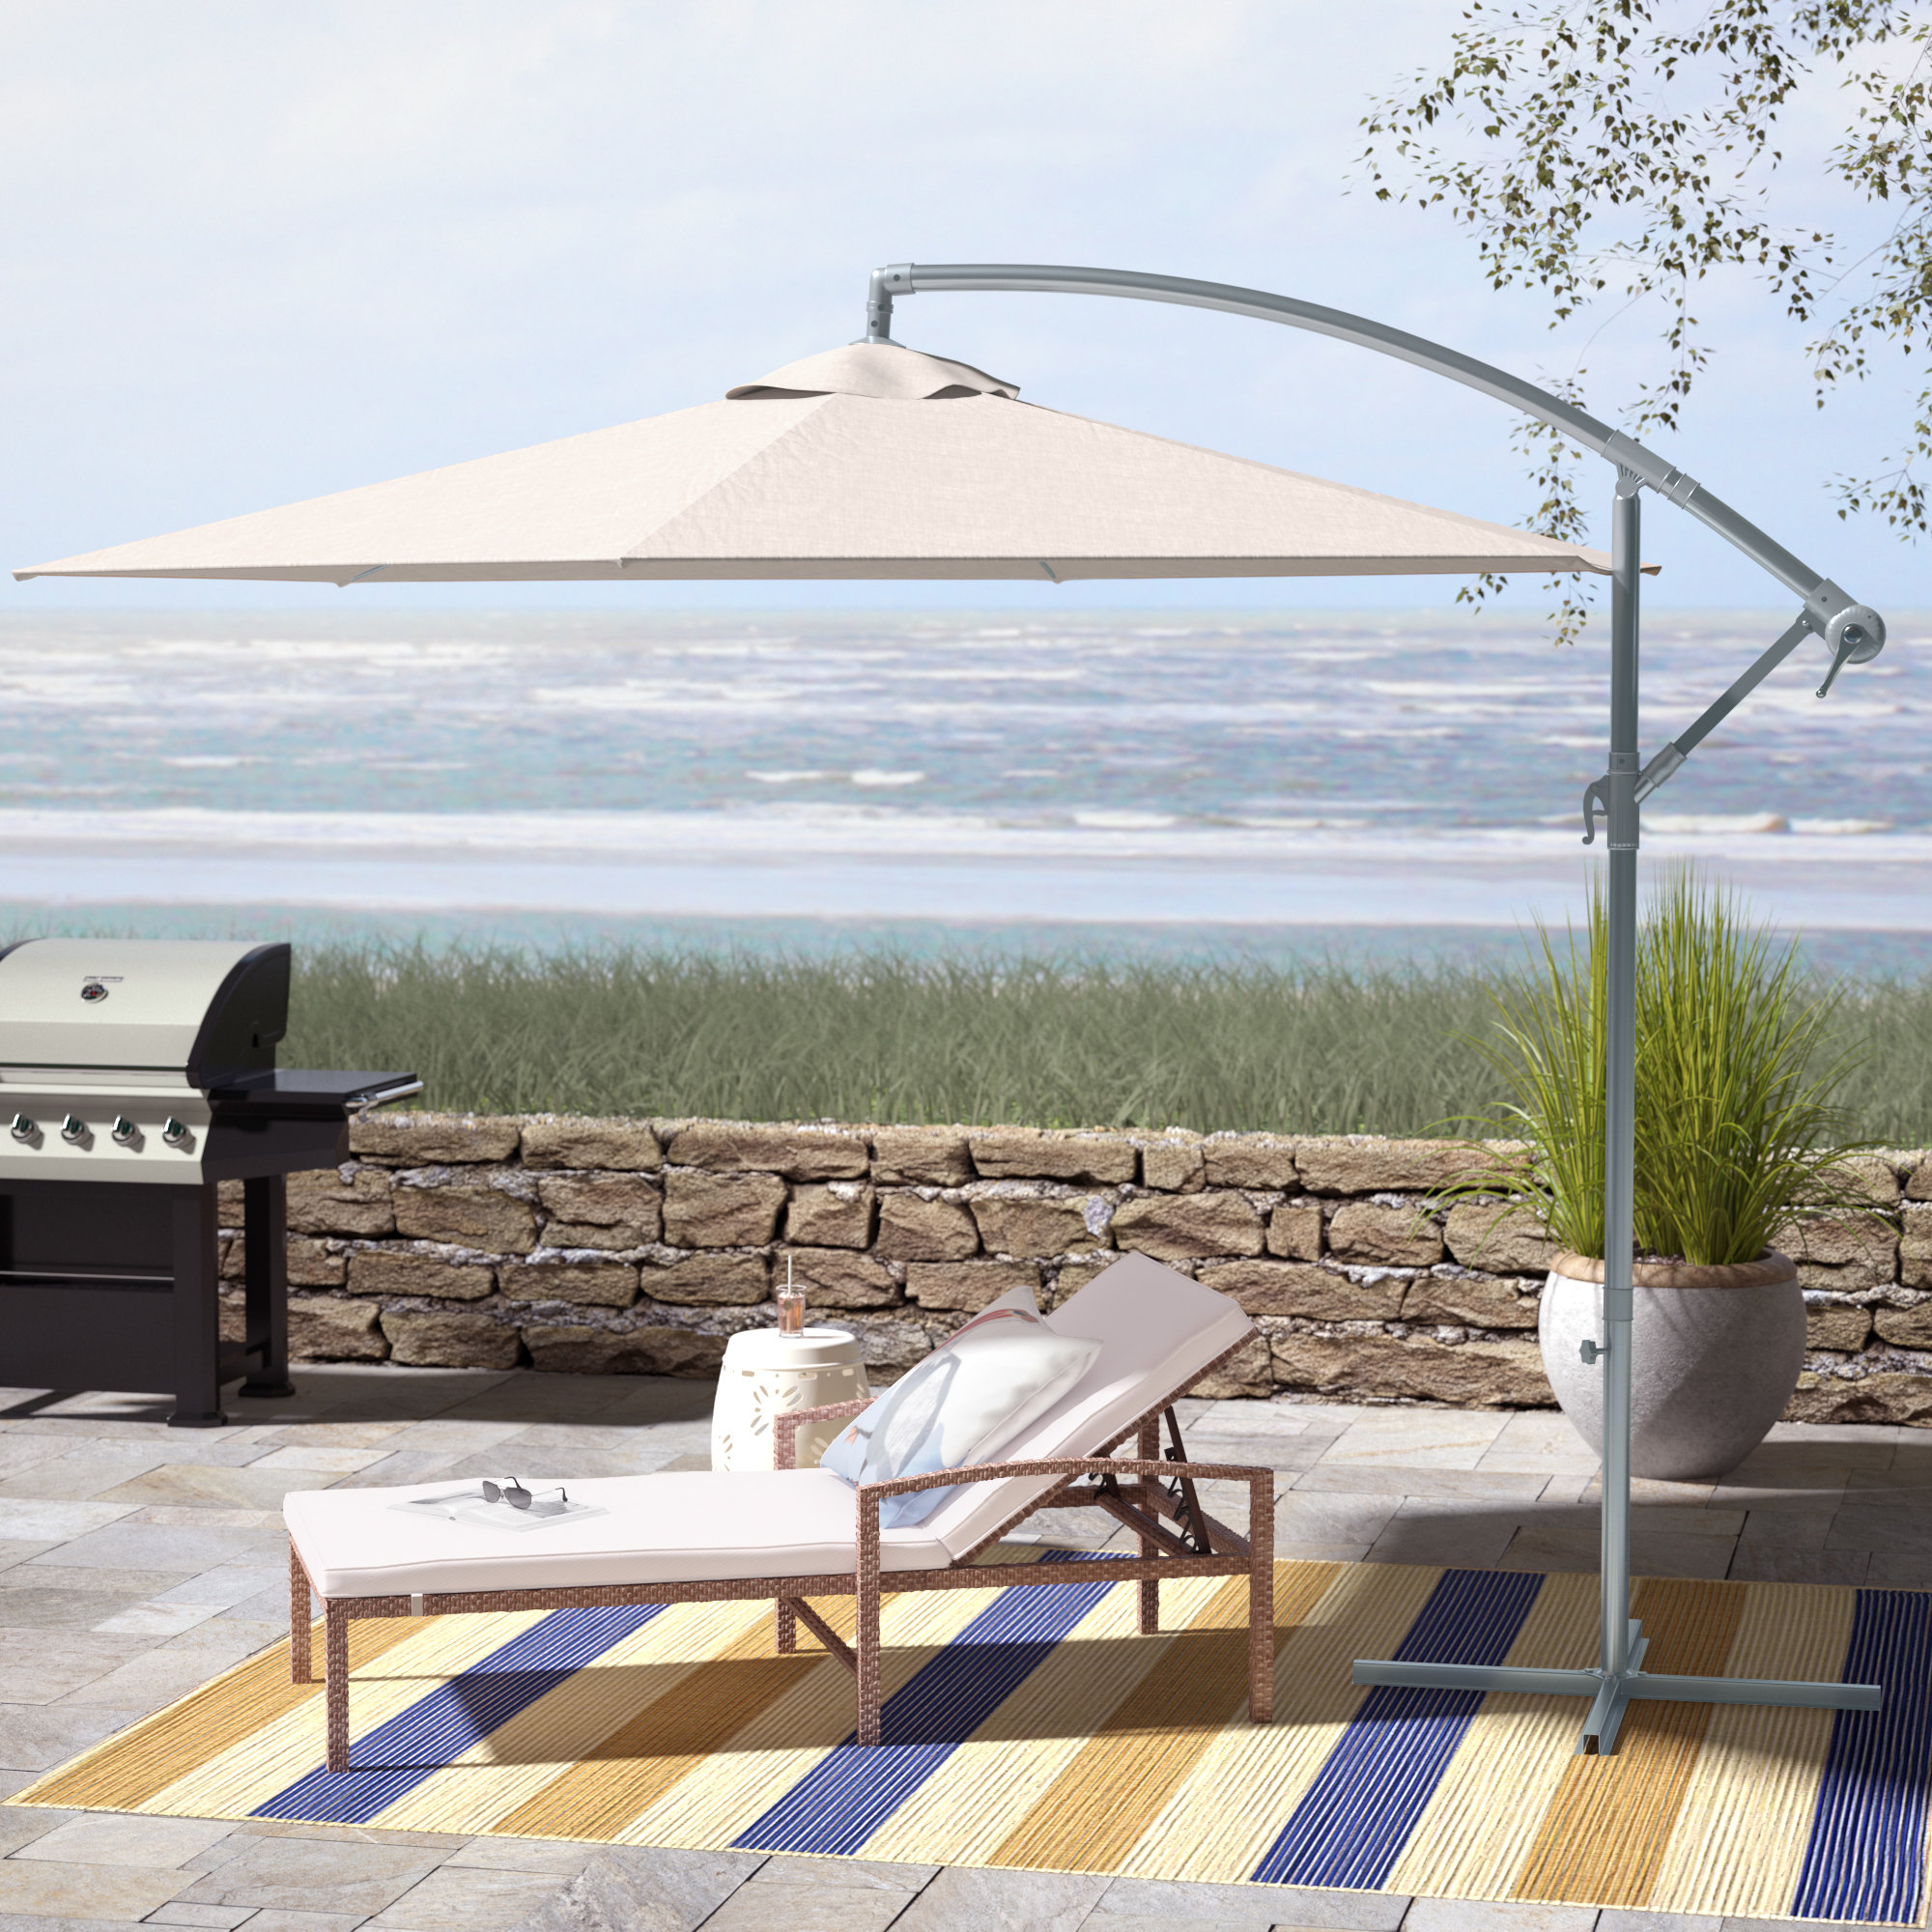 2019 Bormann Cantilever Umbrellas For Muhammad Fullerton 10' Cantilever Umbrella (View 2 of 20)